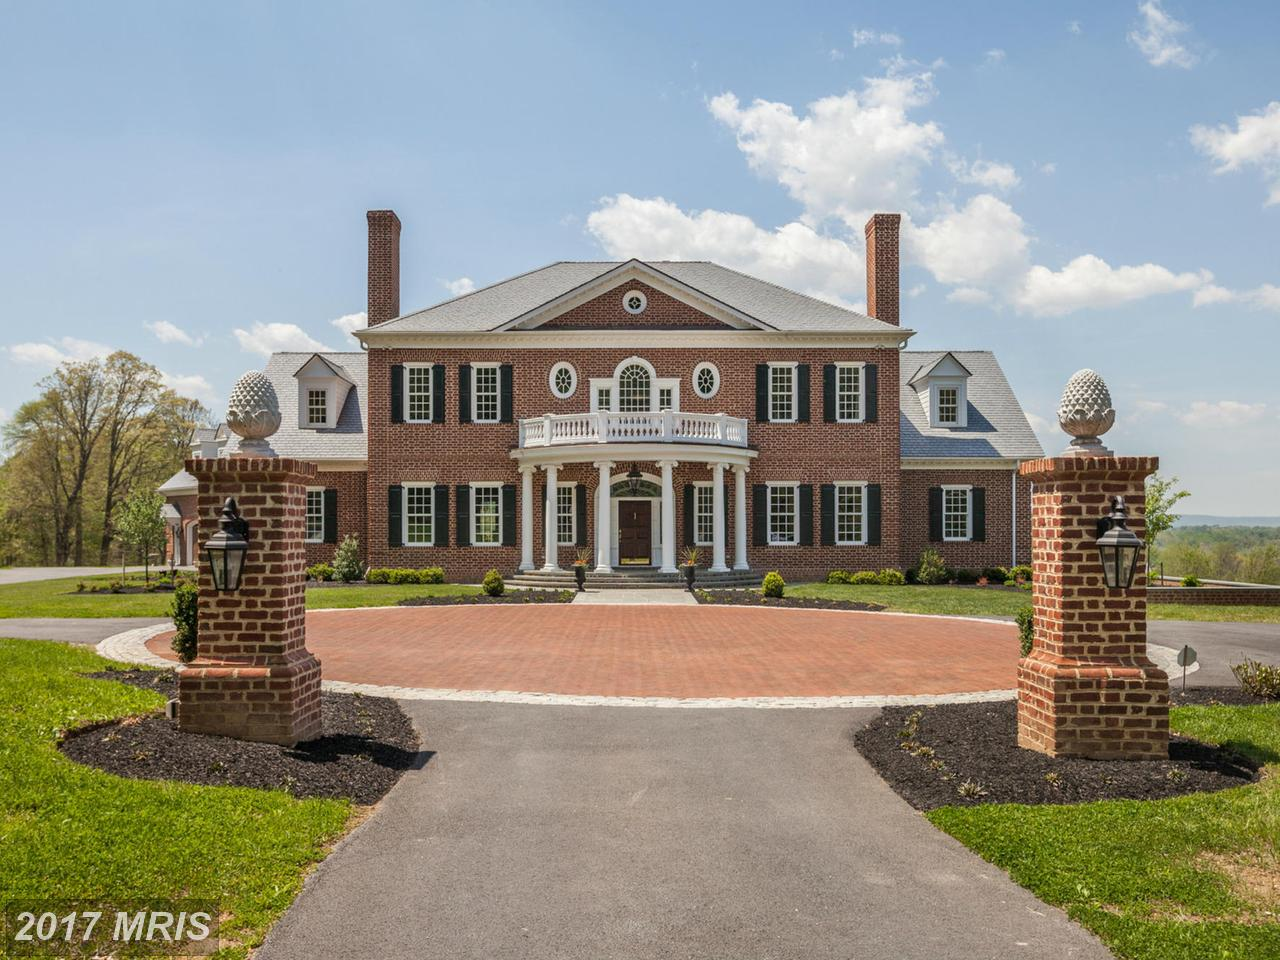 Luxury homes for sale in frederick md frederick mls for House builders in maryland